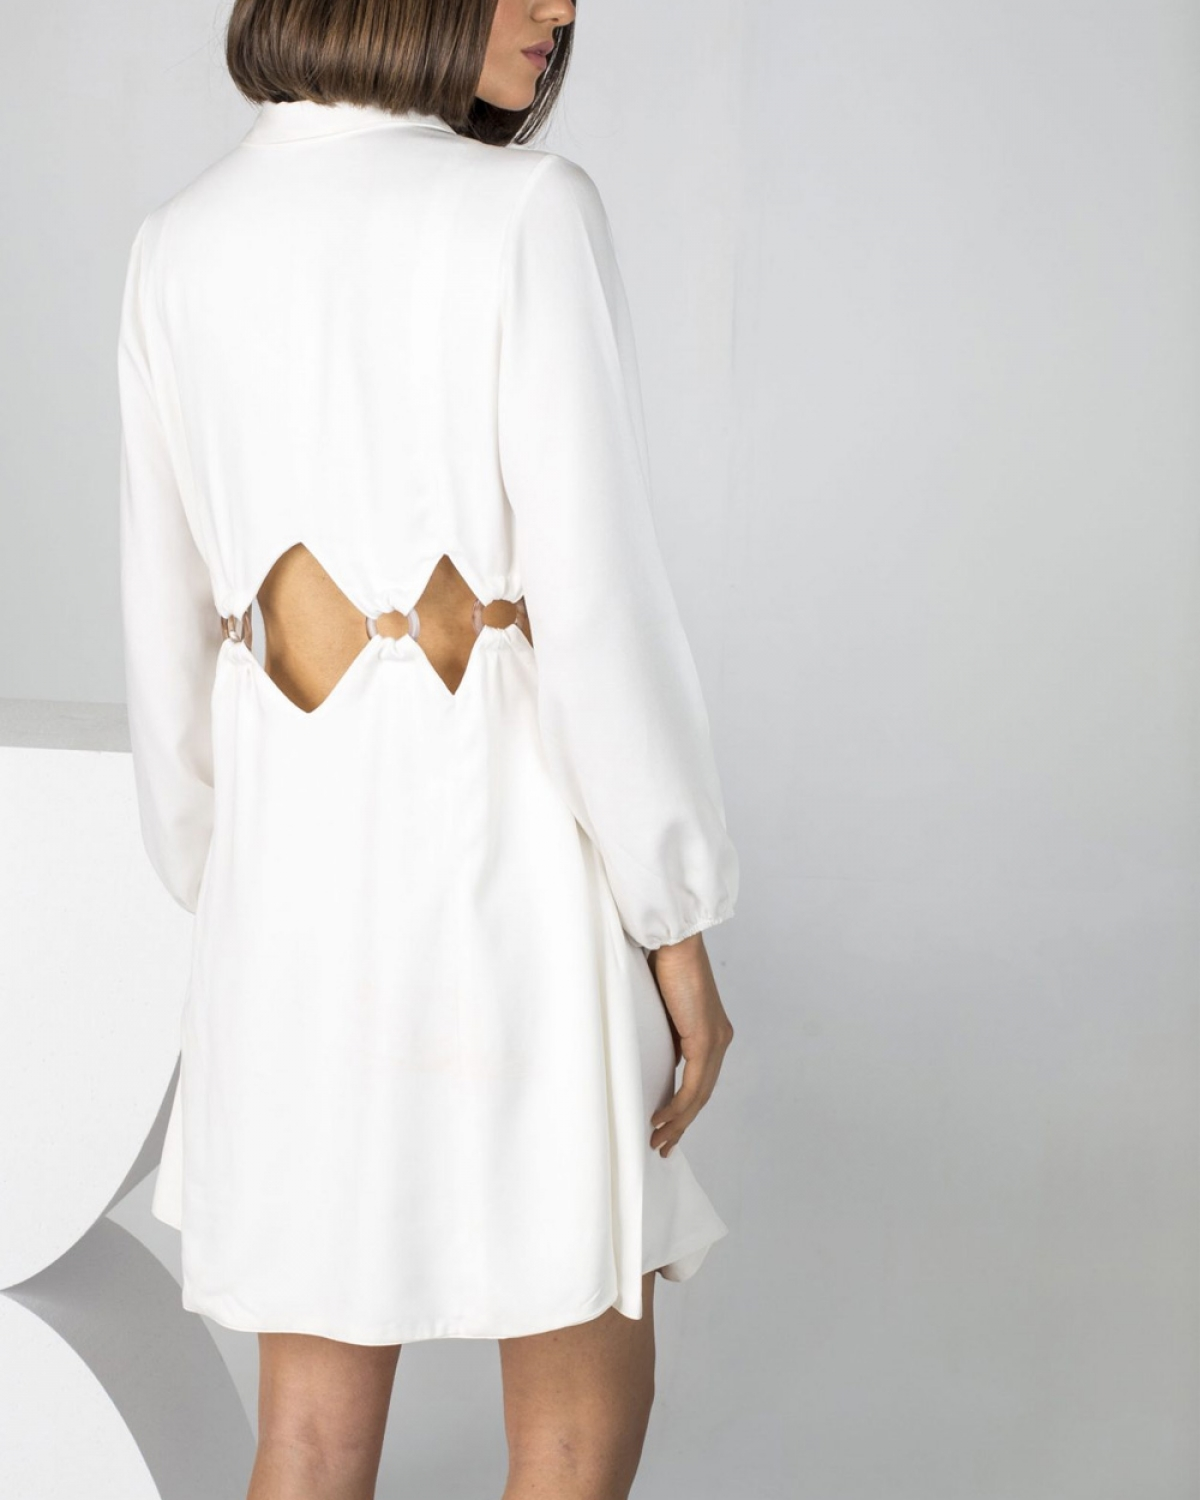 Harmony White Dress